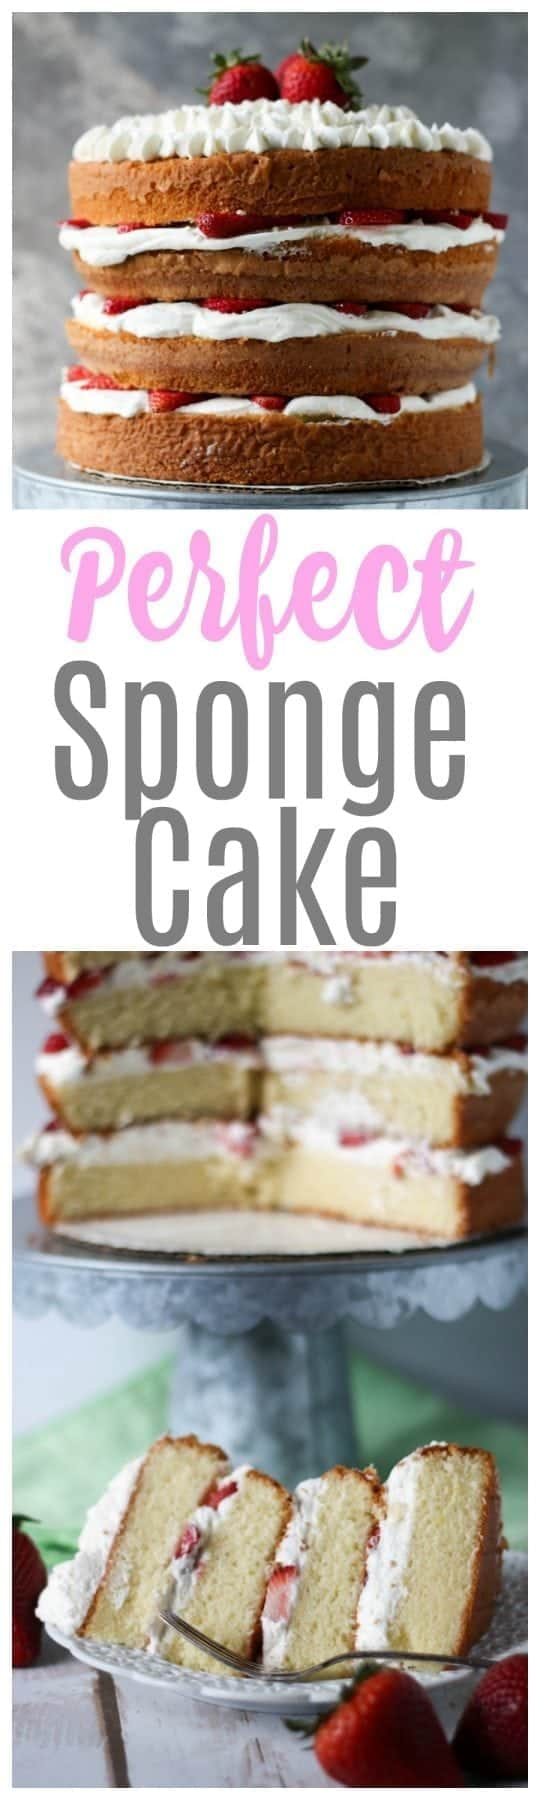 This 4 layer perfect sponge cake is going to be a major showstopper at your next event! Layer this cake with whipped cream and strawberries for the ultimate strawberry shortcake!